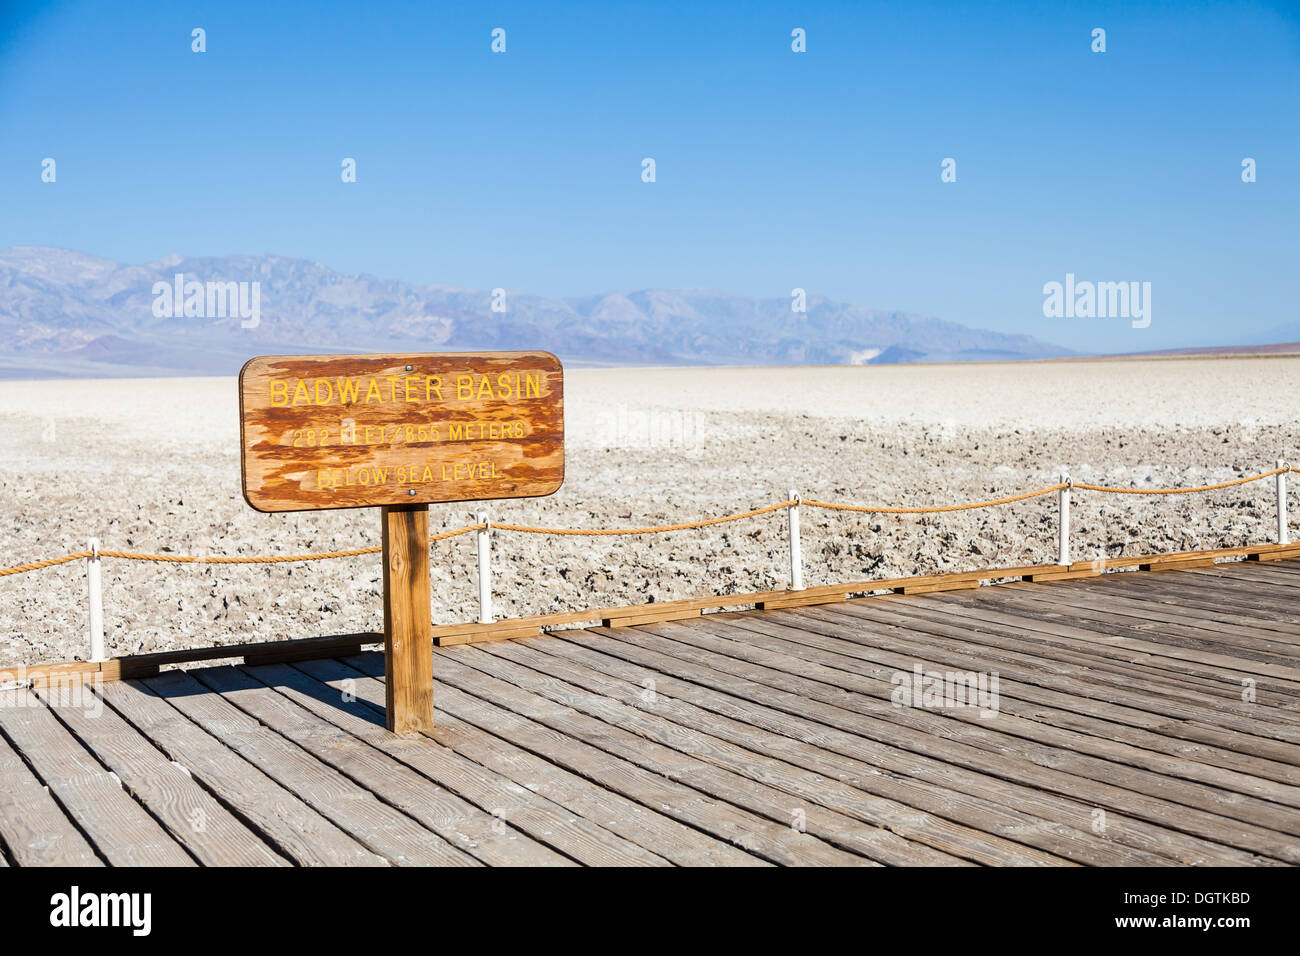 USA, Death Valley. Badwater point: salt road in the middle of the desert - Stock Image